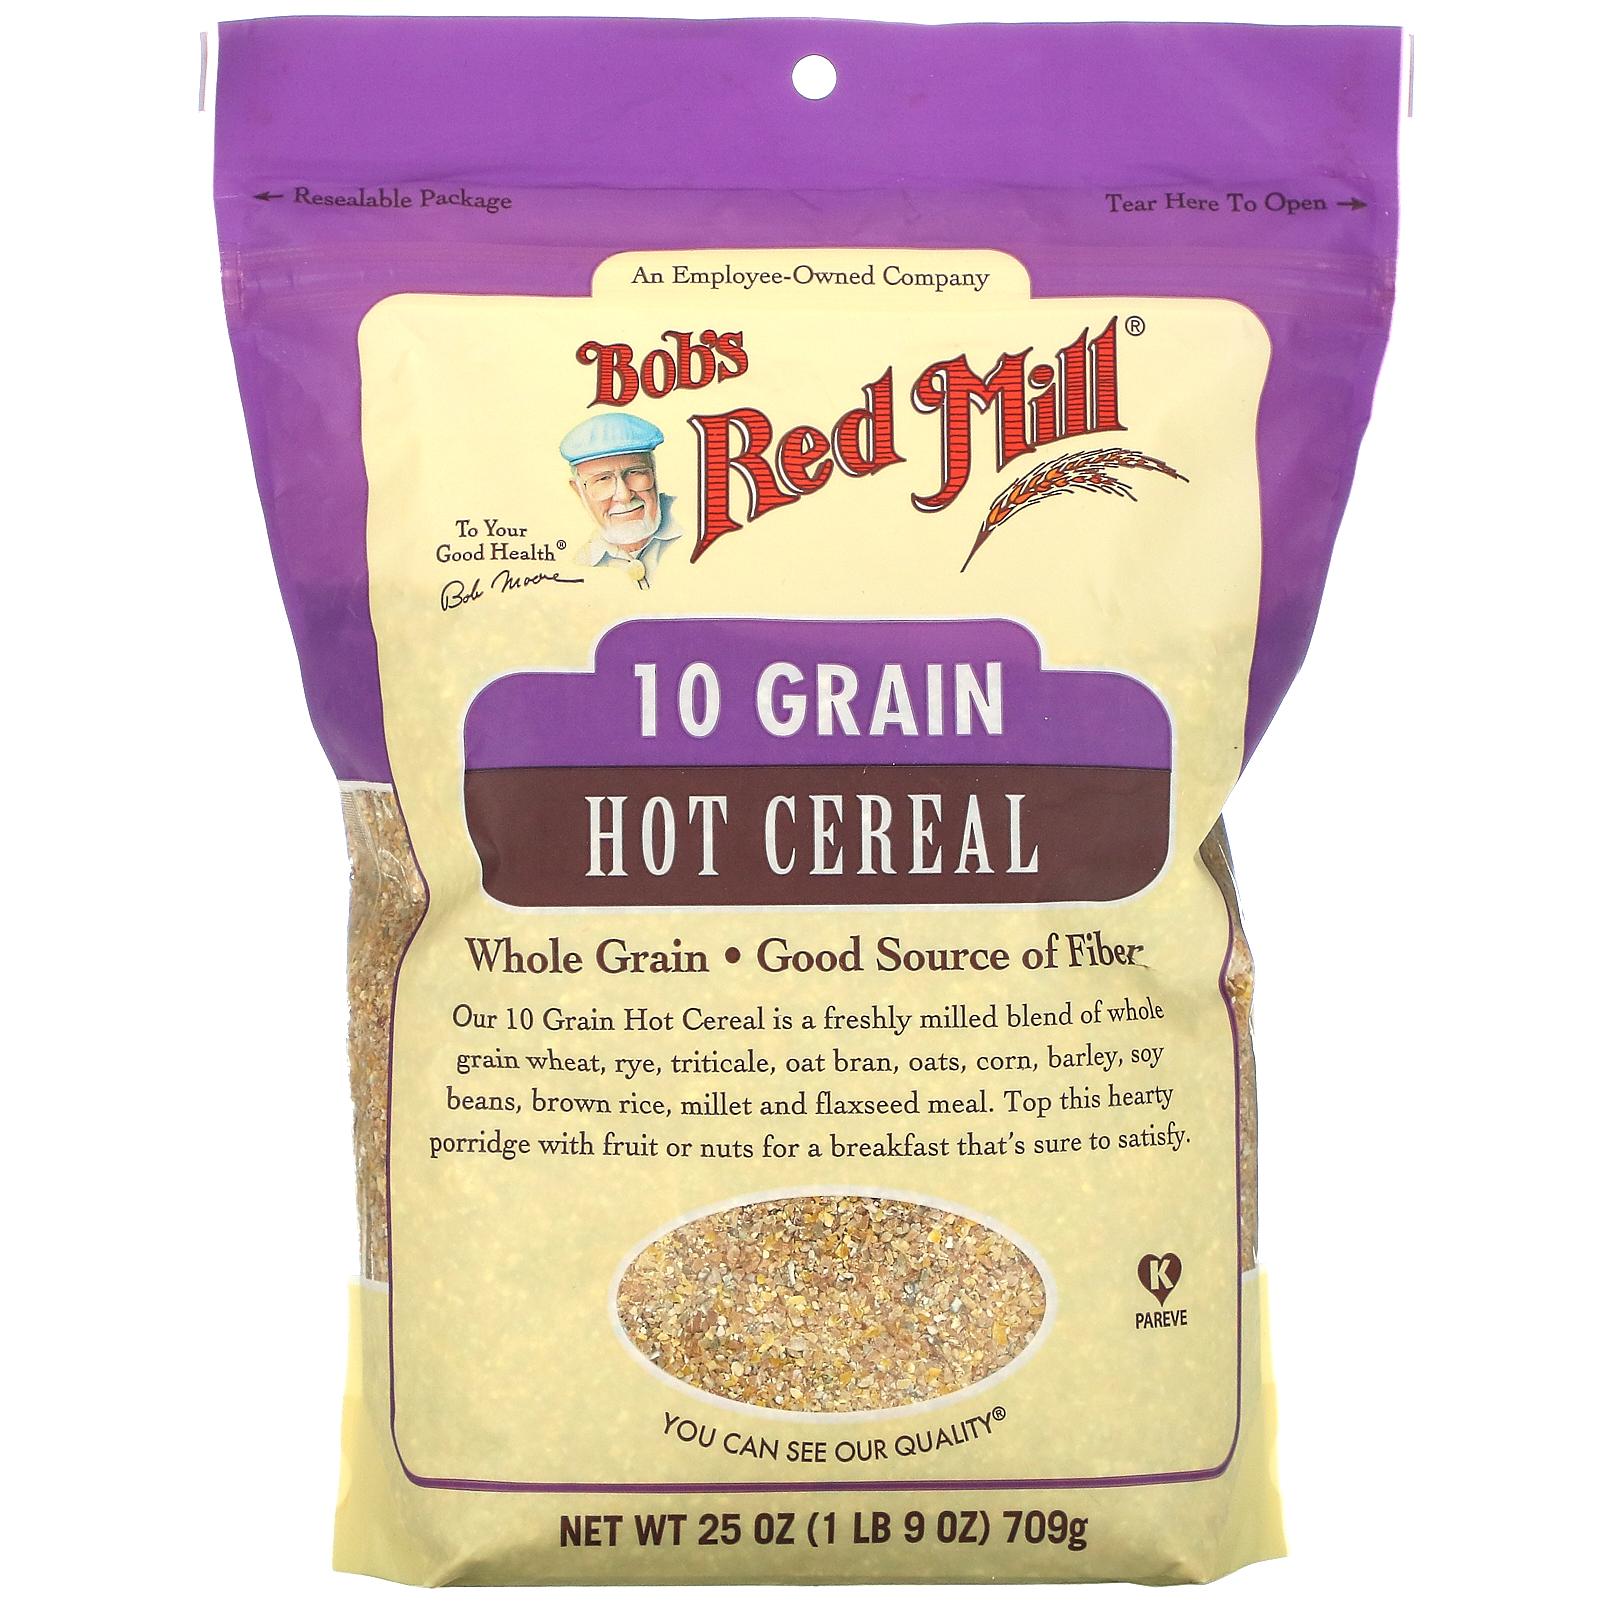 Bob's Red Mill, 10 Grain Hot Cereal, Whole Grain, 25 oz (709 g)